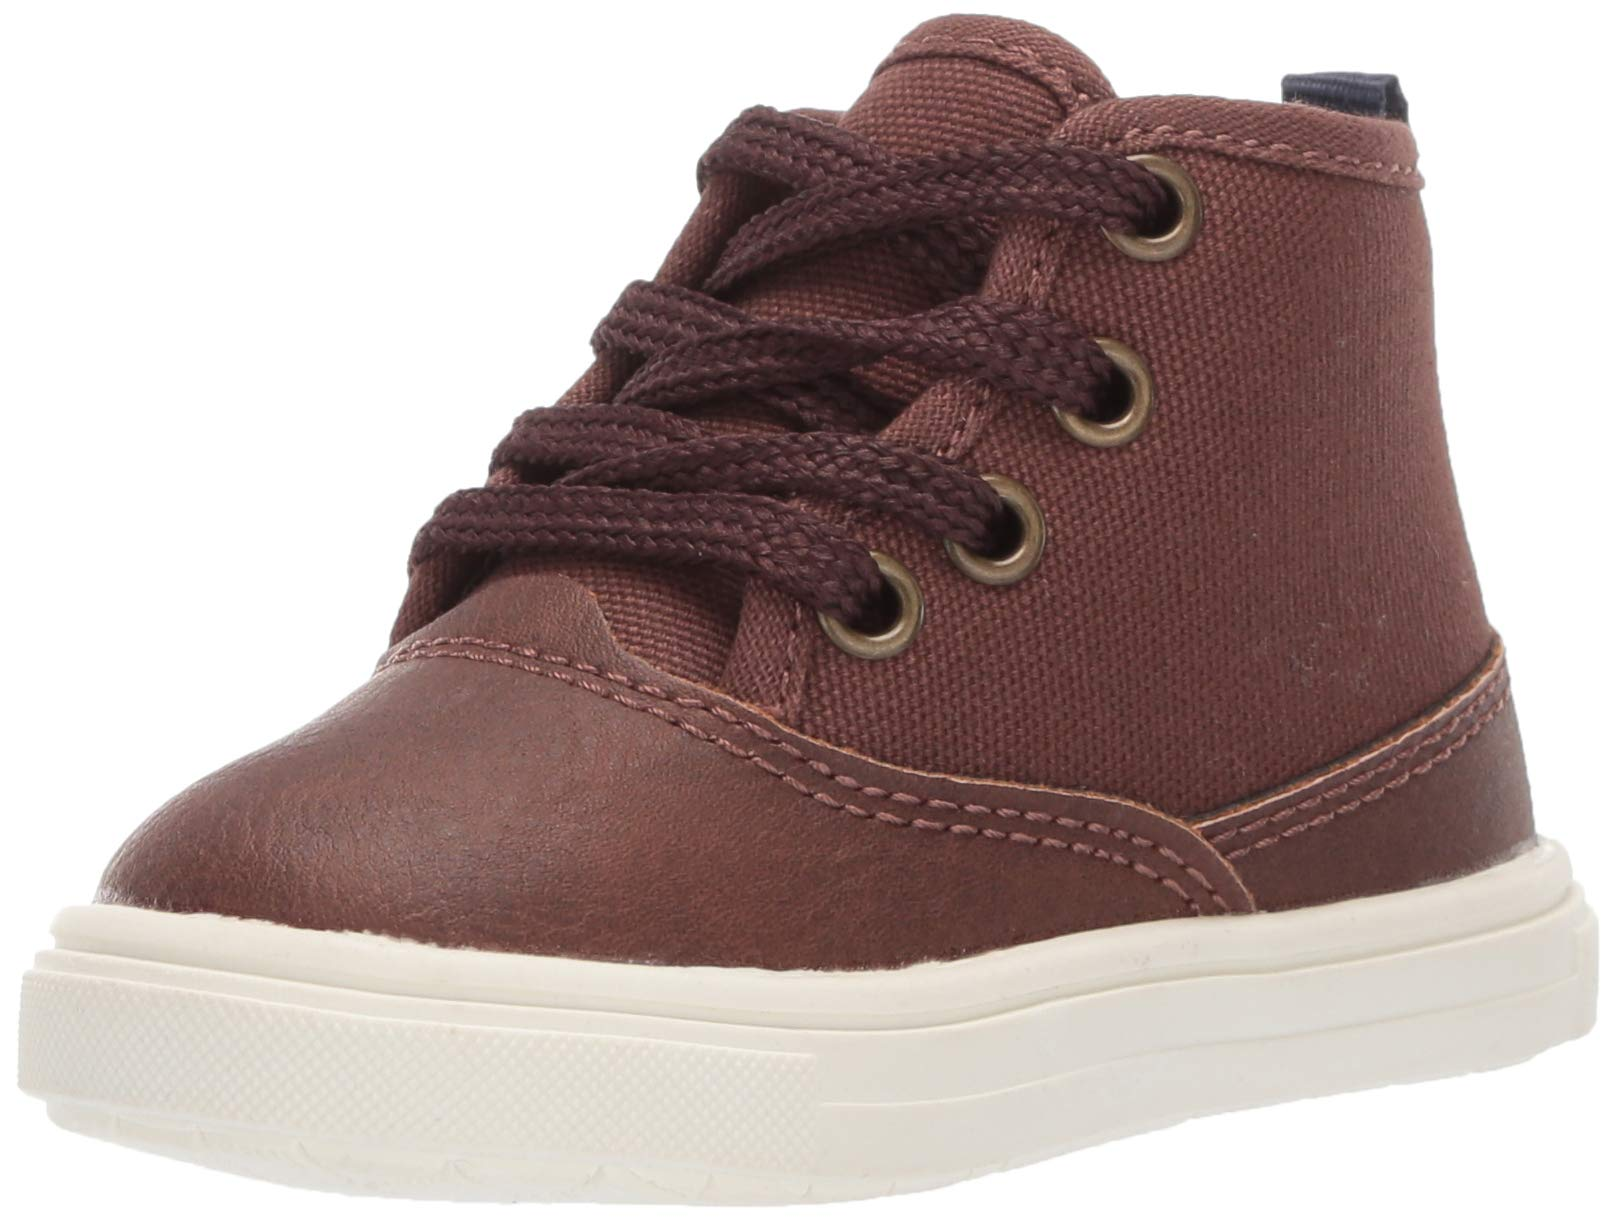 Carter's Denzel Boy's Casual High-Top Sneaker, Brown, 9 M US Toddler by Carter's